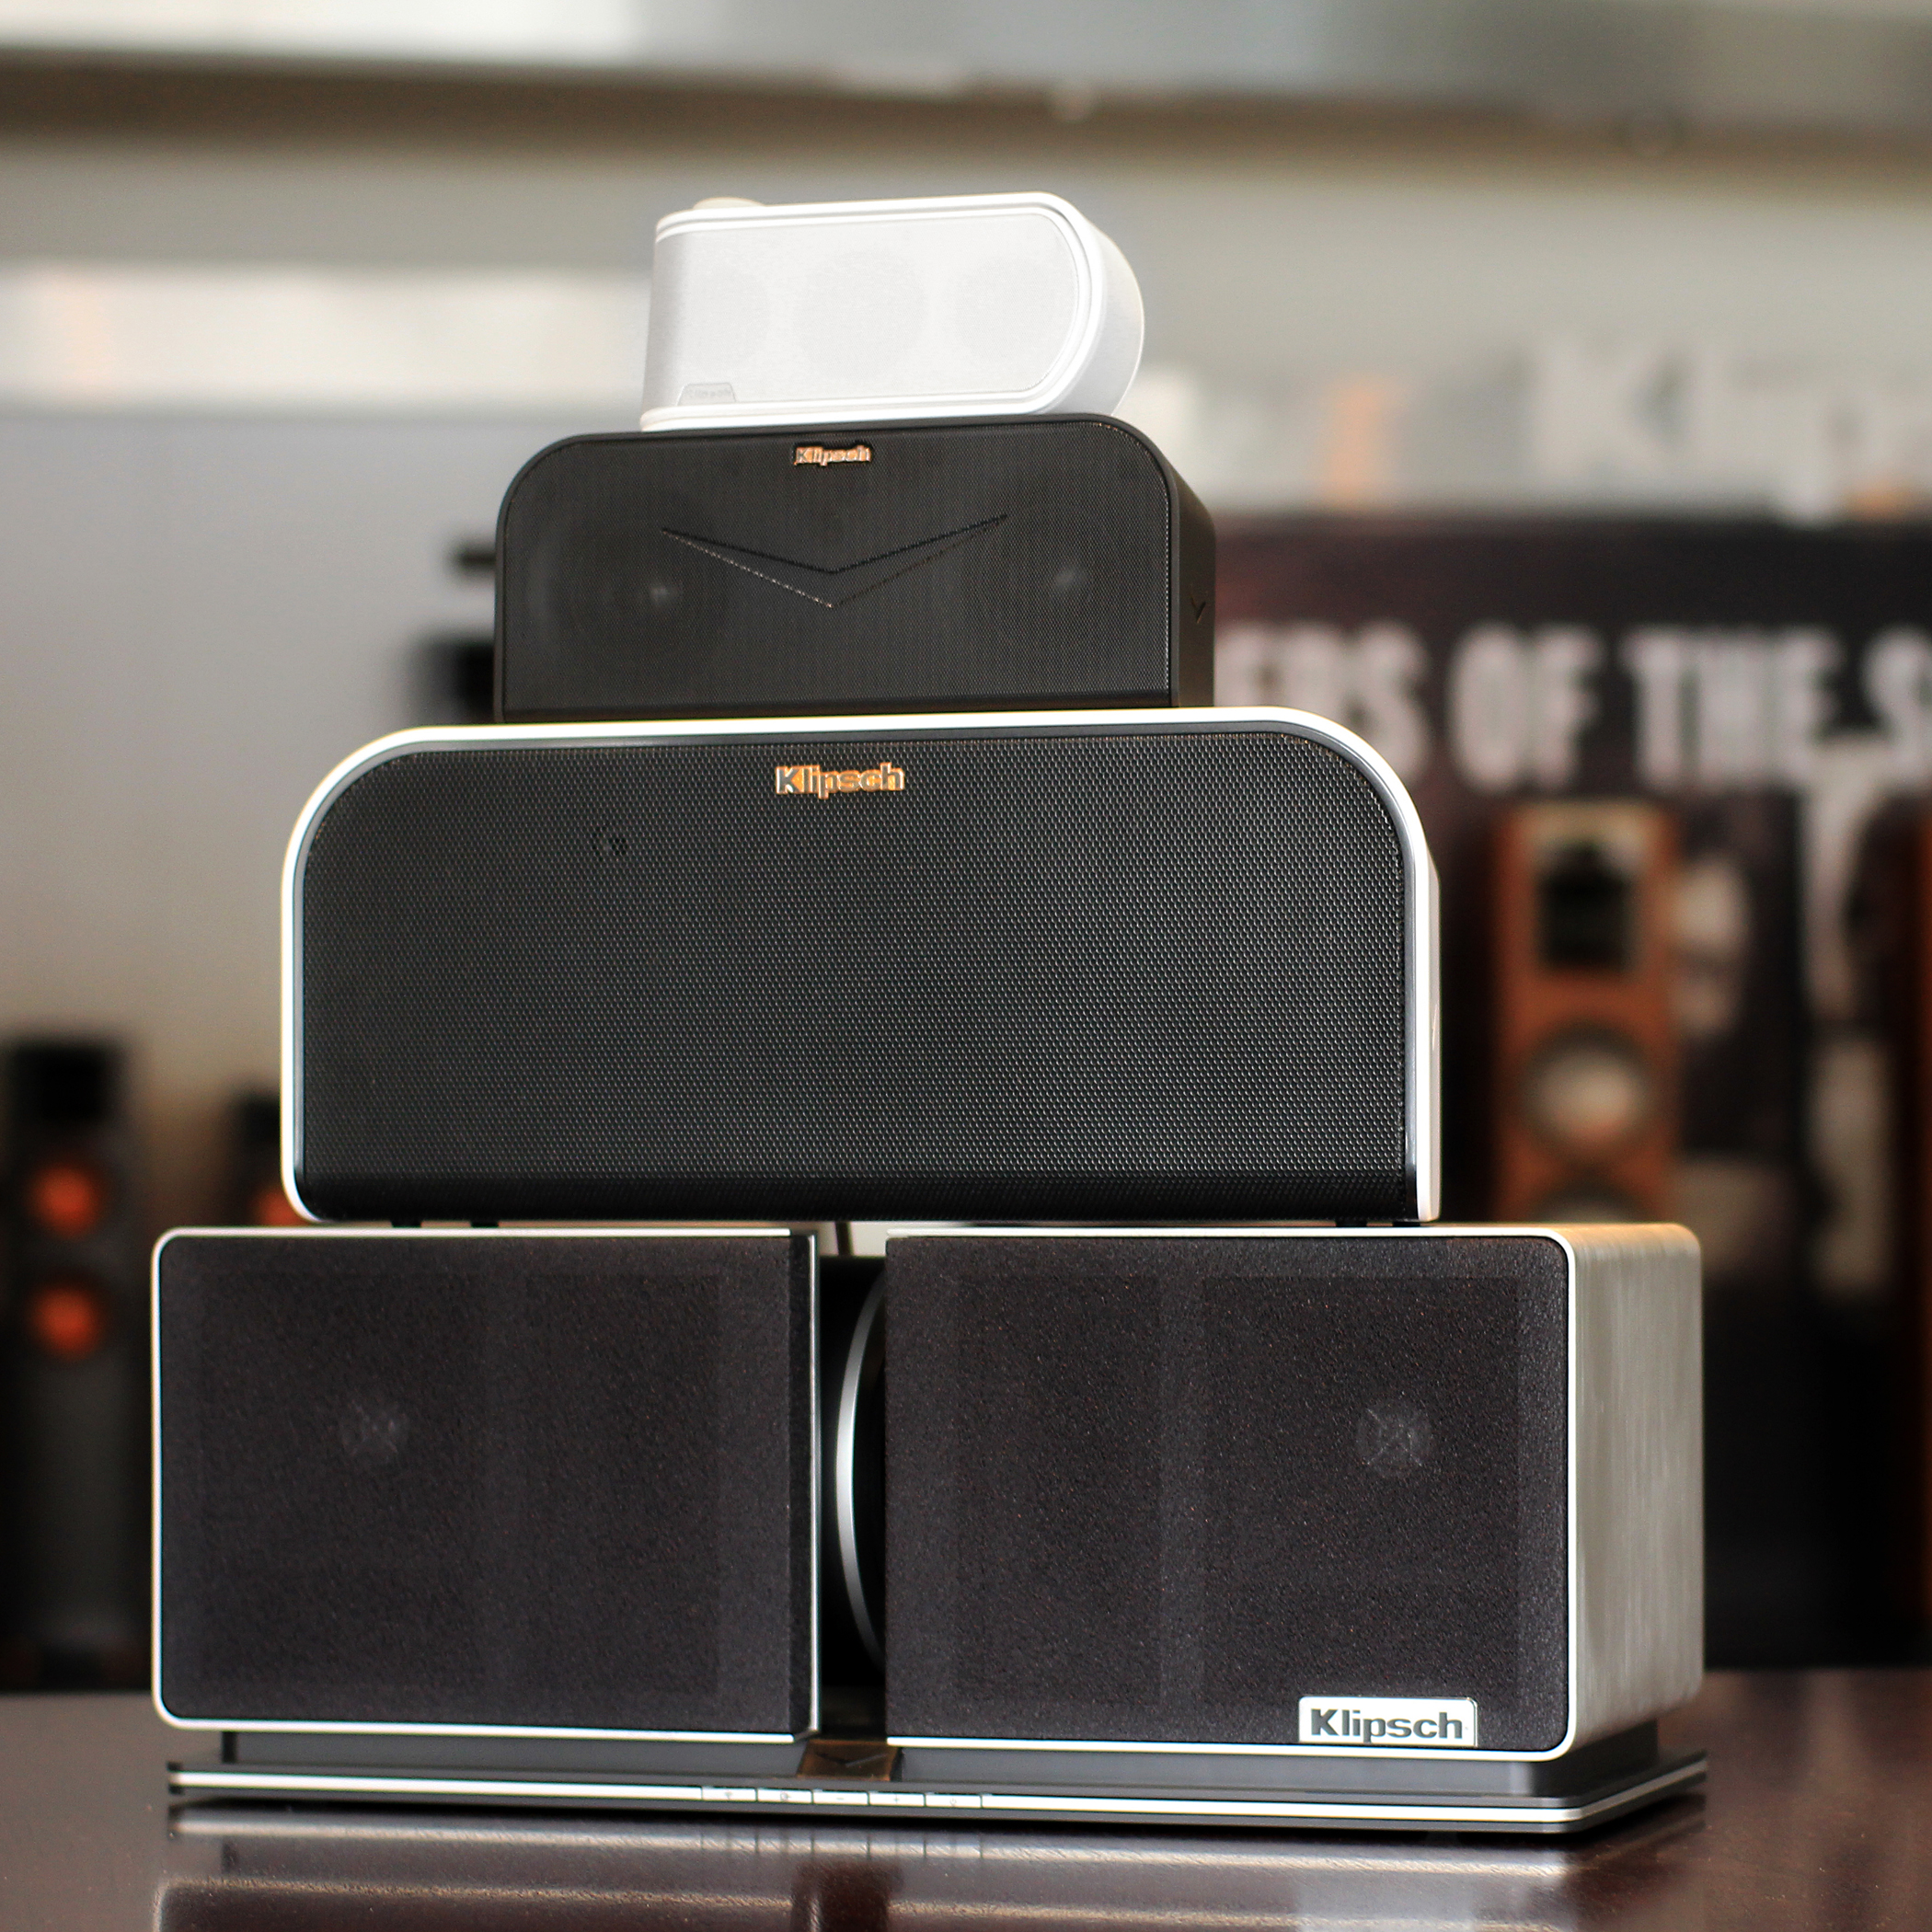 klipsch 3 1 system. klipsch speakers have always possessed a unique ability, with their unparalleled efficiency, low distortion and wide dynamic range, to reproduce sound that 3 1 system